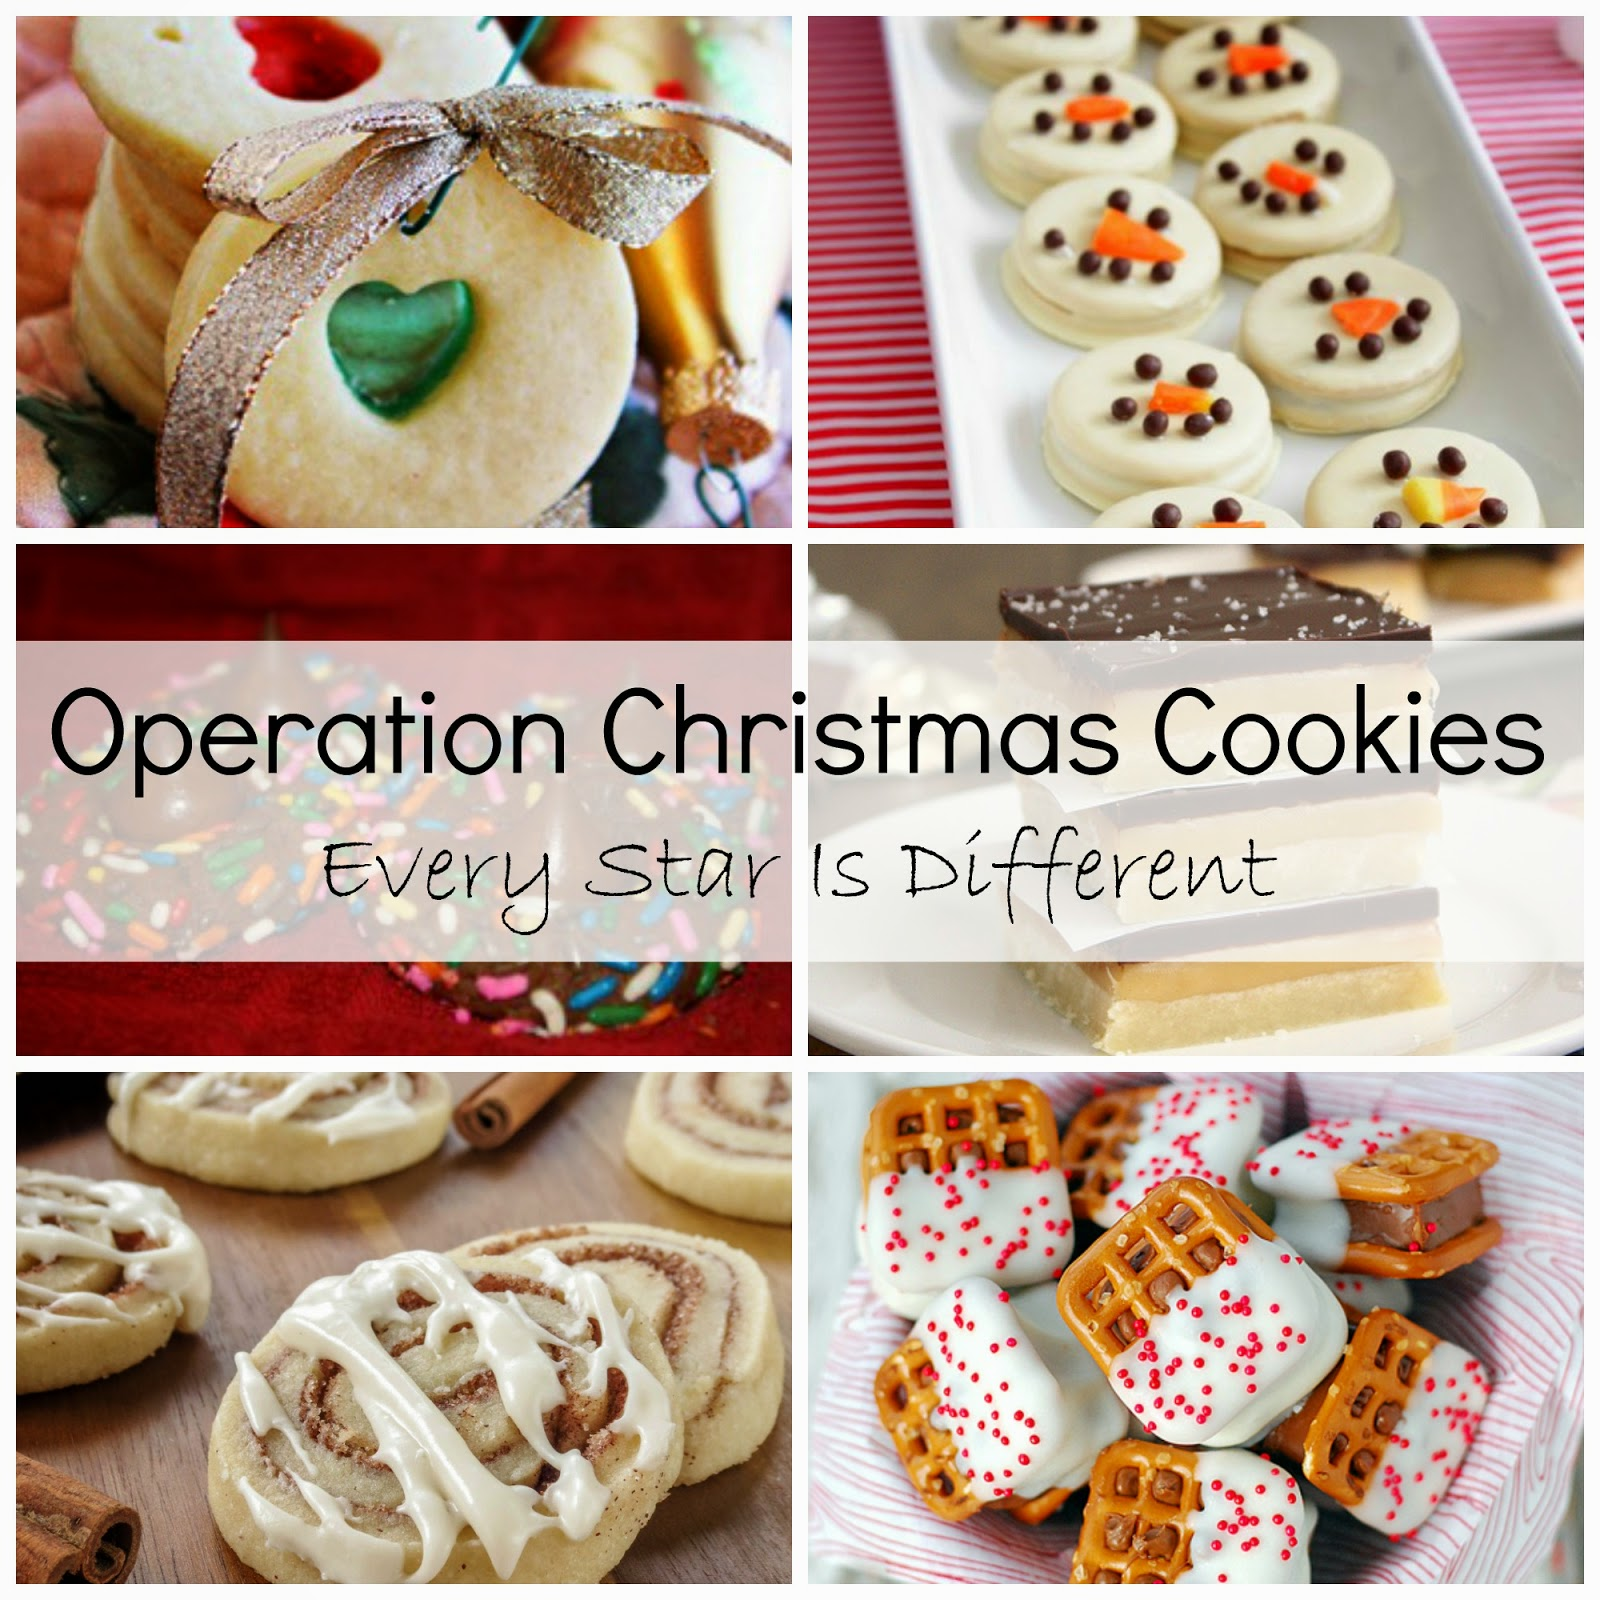 Operation Christmas Cookies